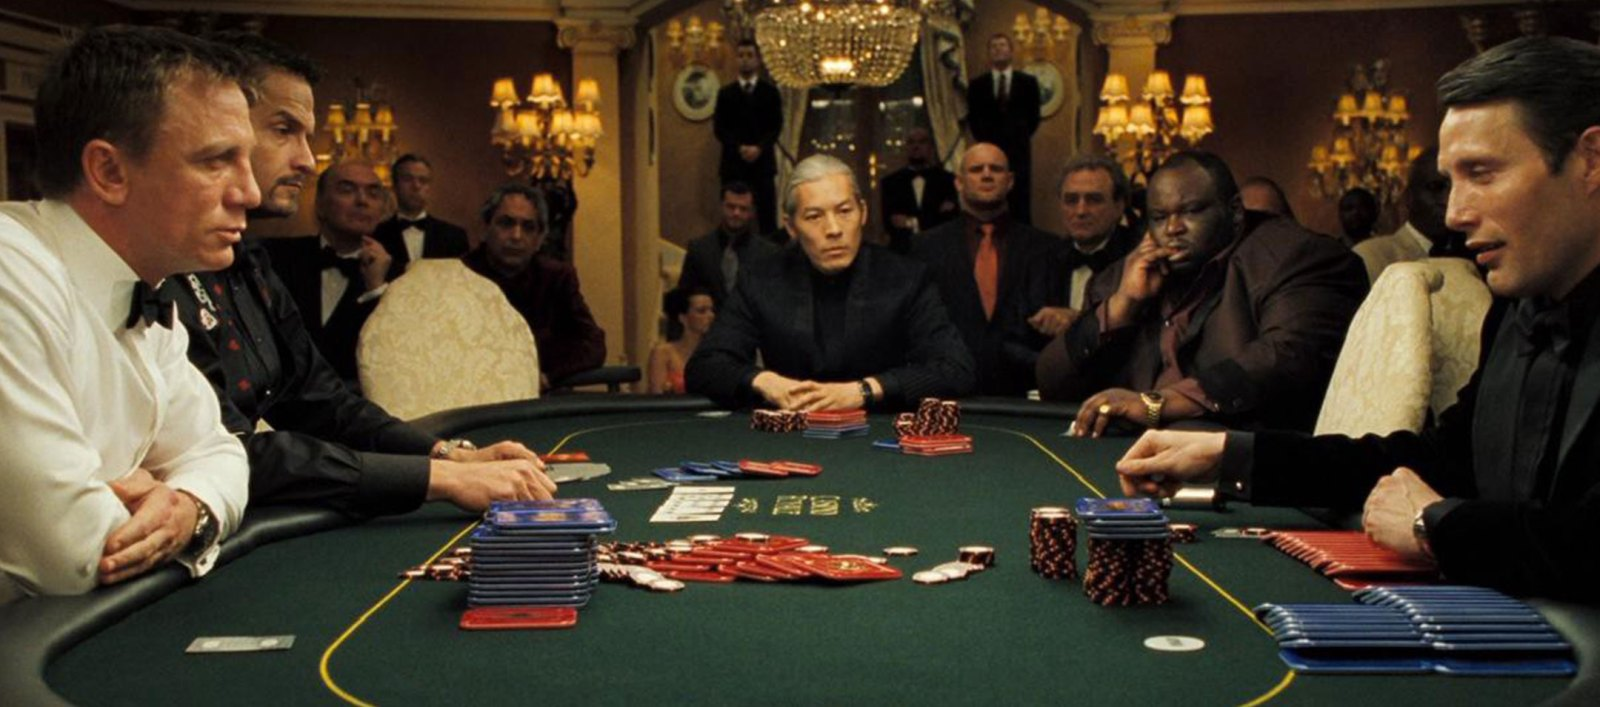 Ranking the Top 7 Casino and Gambling Movies, You Need to Watch